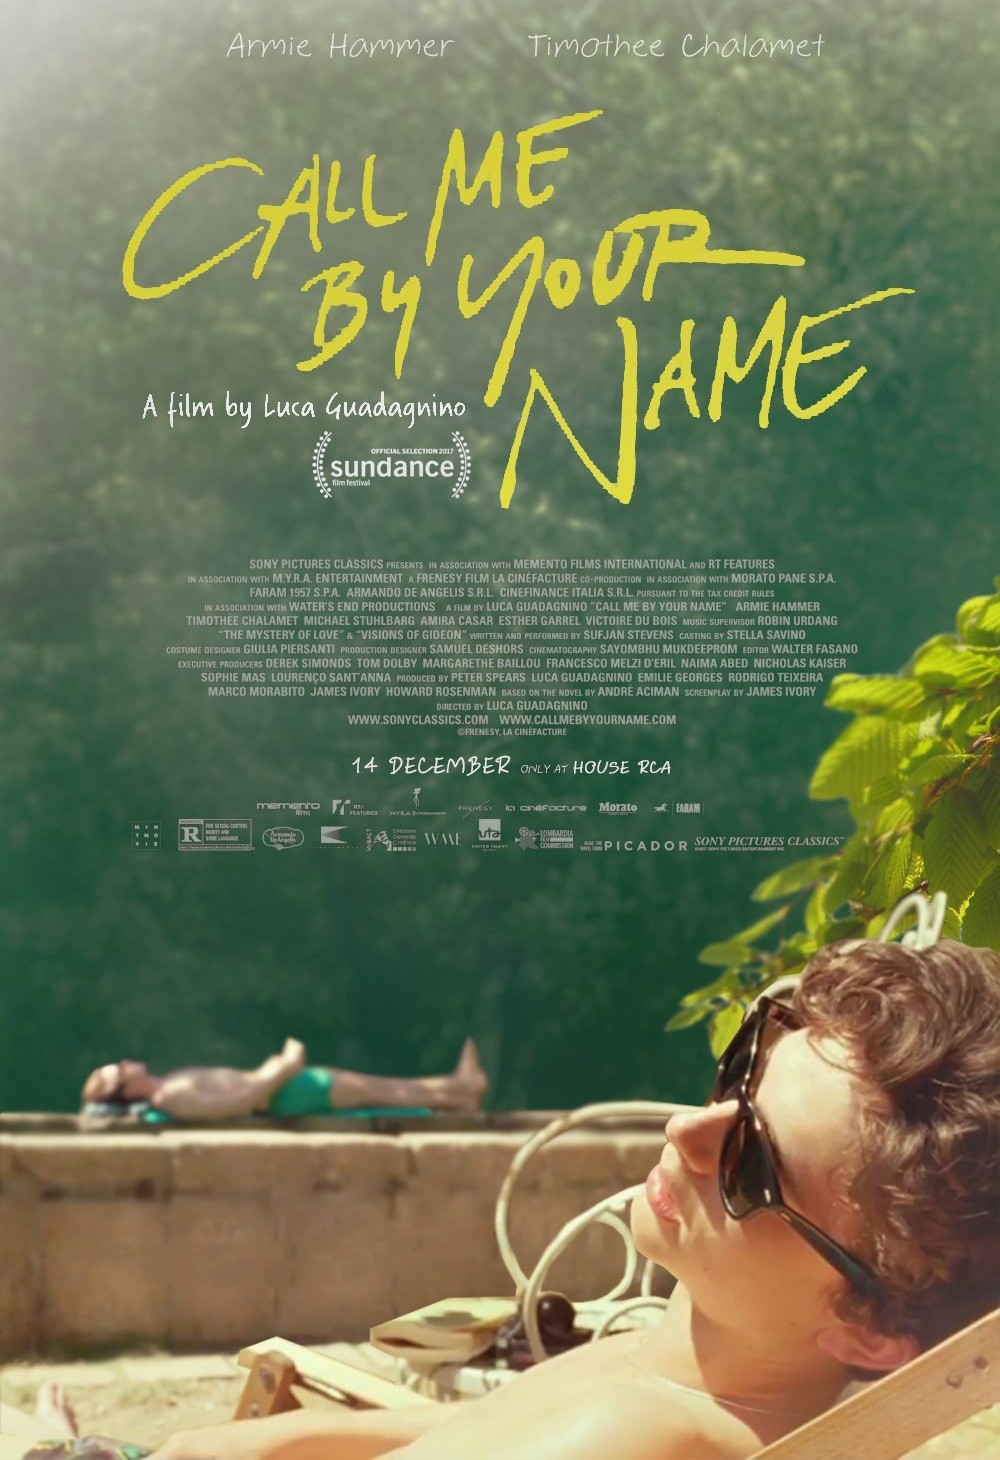 (PDF) Call Me by Your Name: A Novel by André Aciman ...